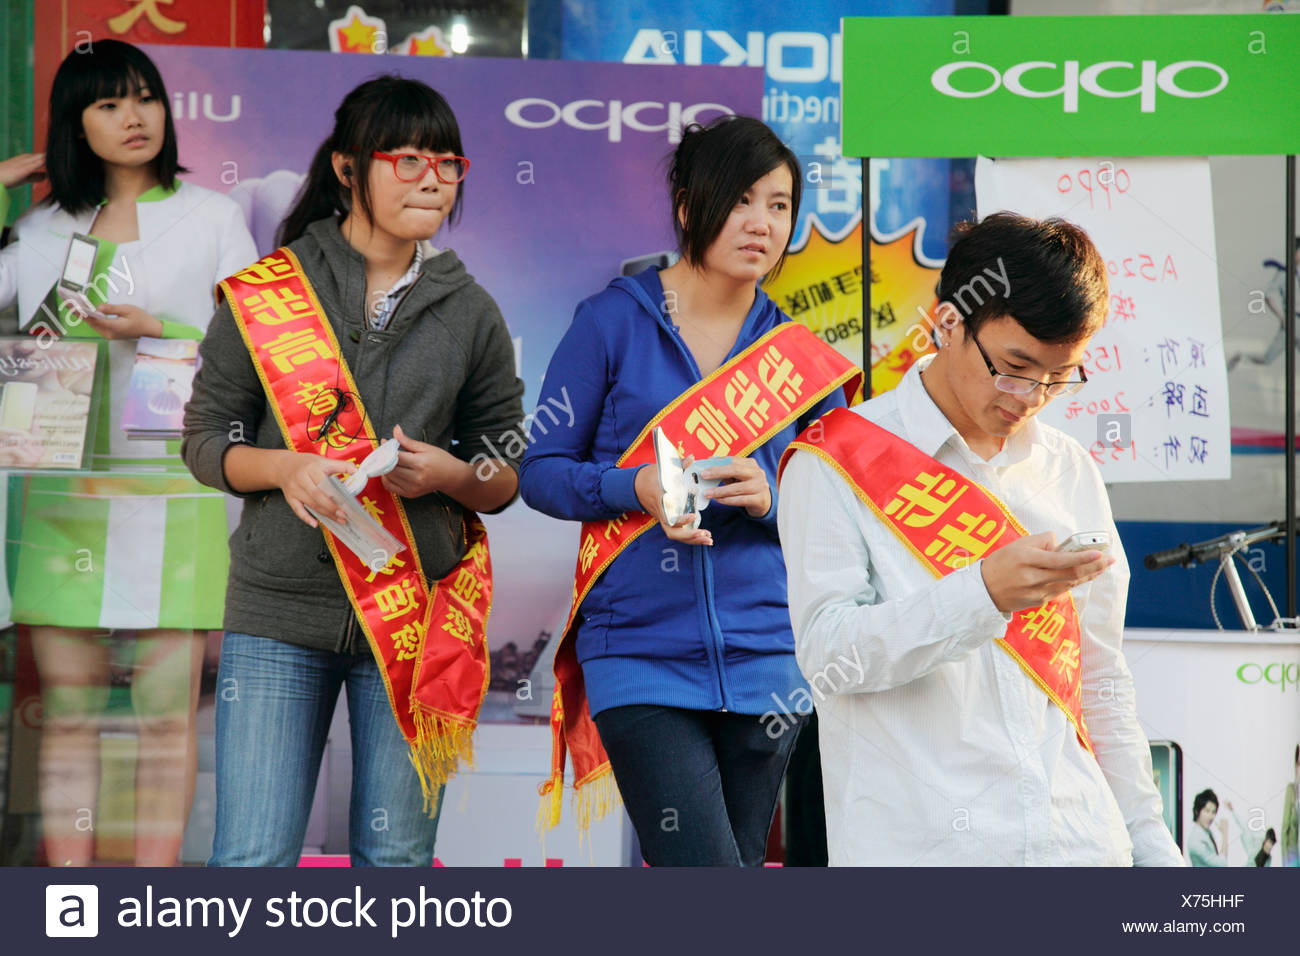 Collage students doing promotional work for department store in downtown of Sanya  Sanya  China. - Stock Image